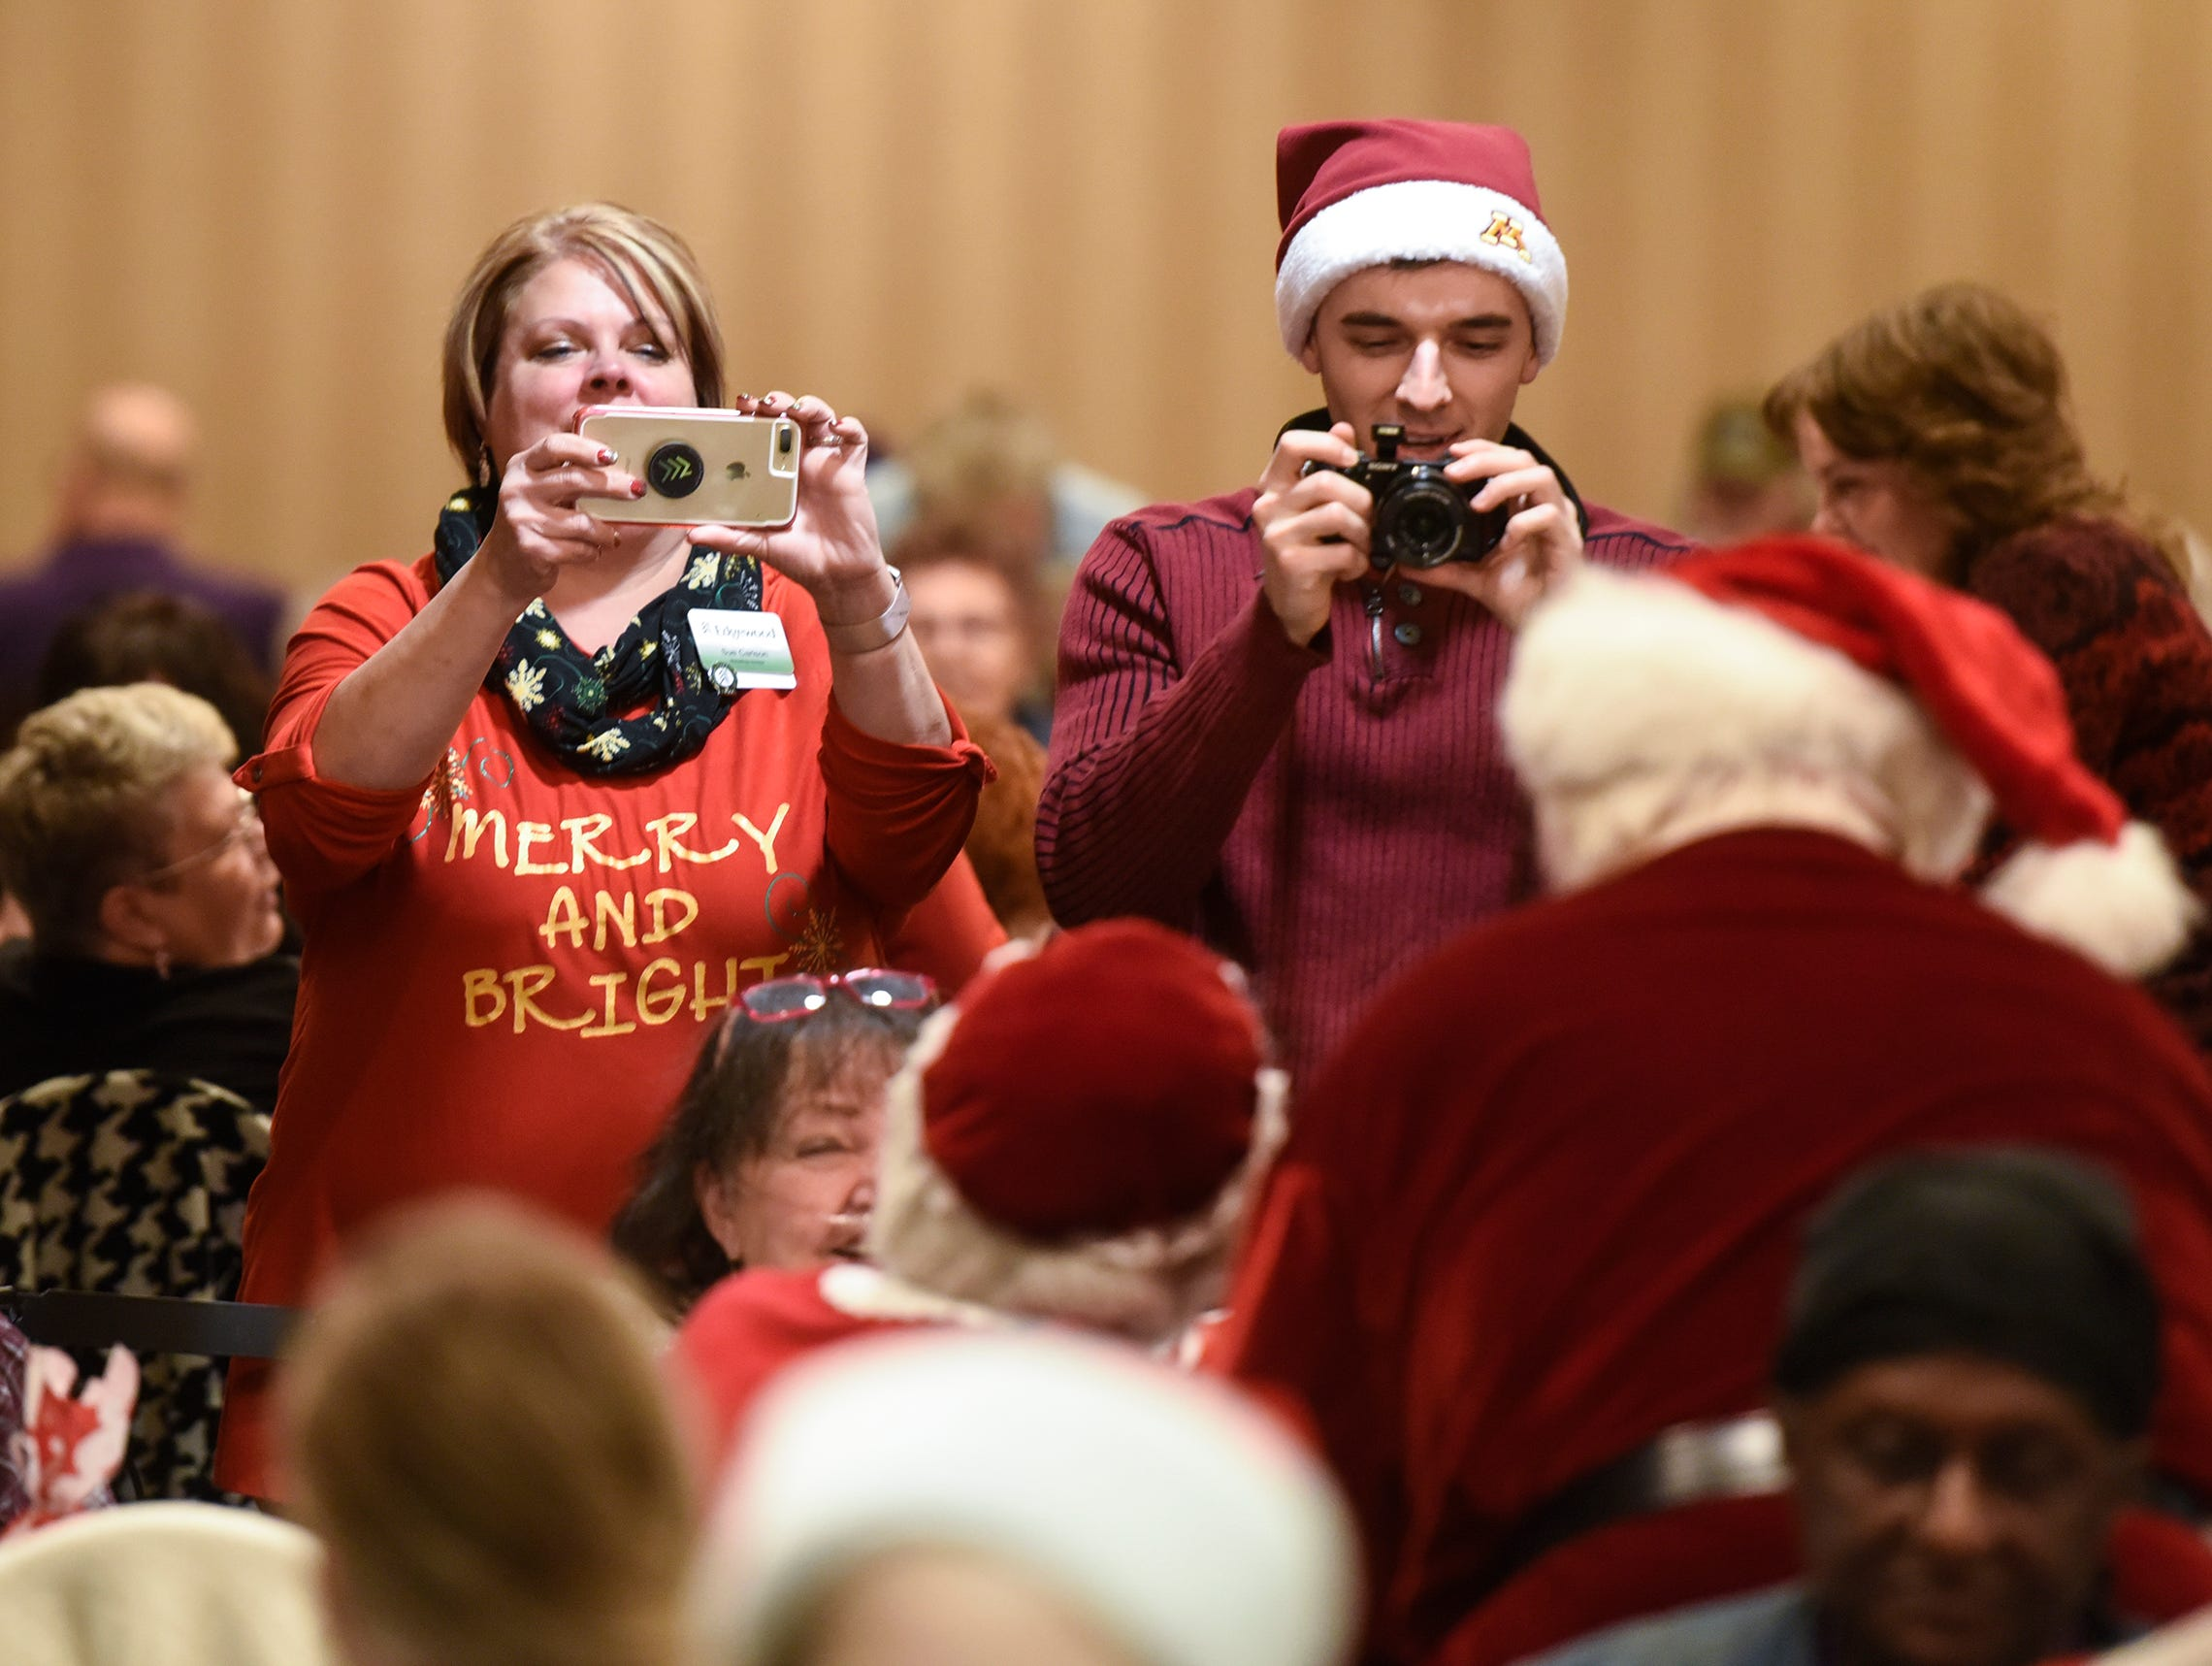 Photographs of residents with Santa and Mrs. Claus are taken during the Dinner with Santa event Monday, Dec. 17, in St. Cloud.